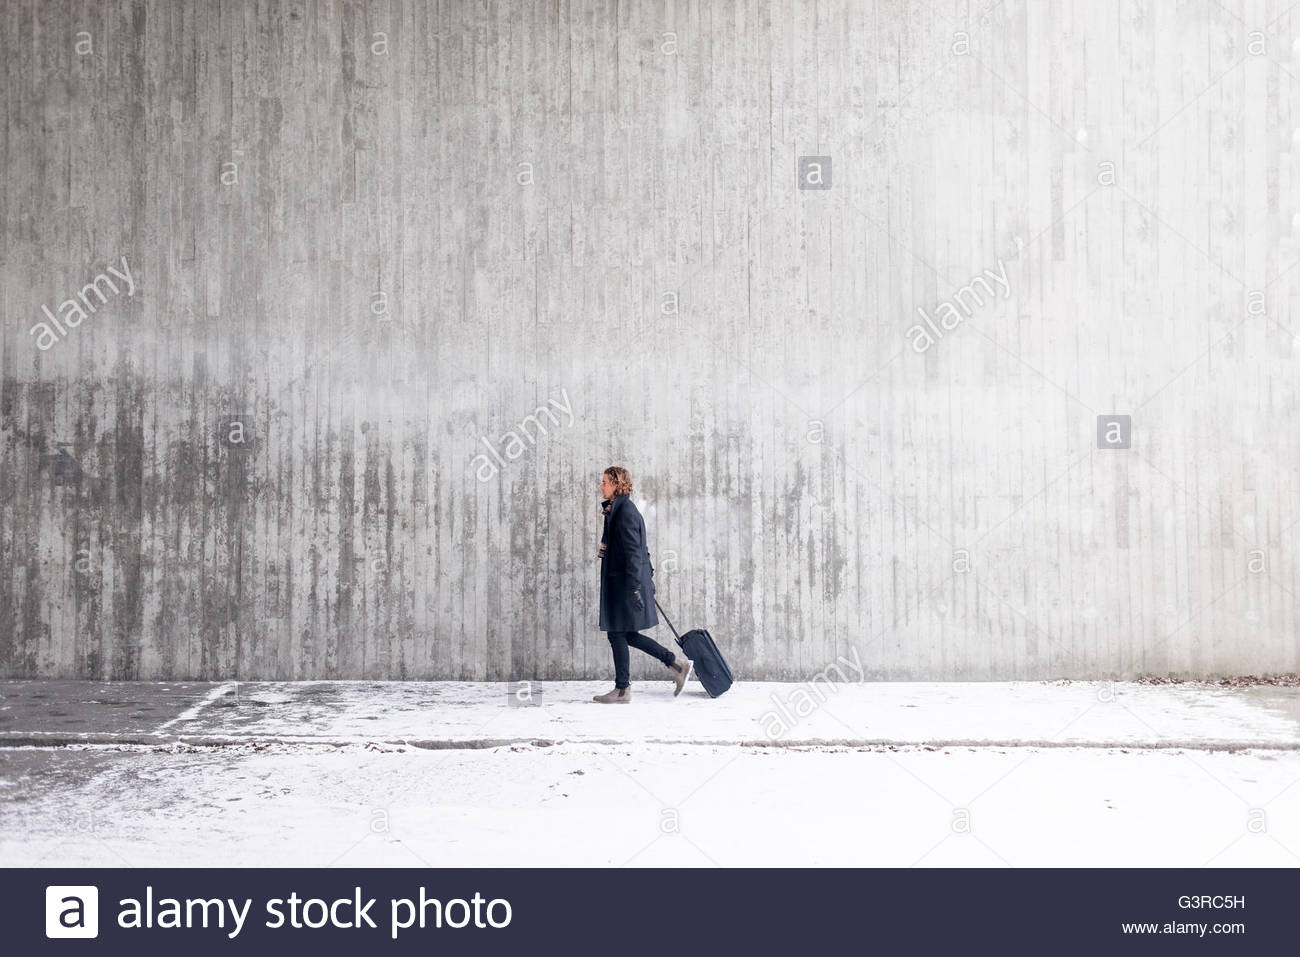 Sweden, Man with wheeled luggage in front of wall - Stock Image